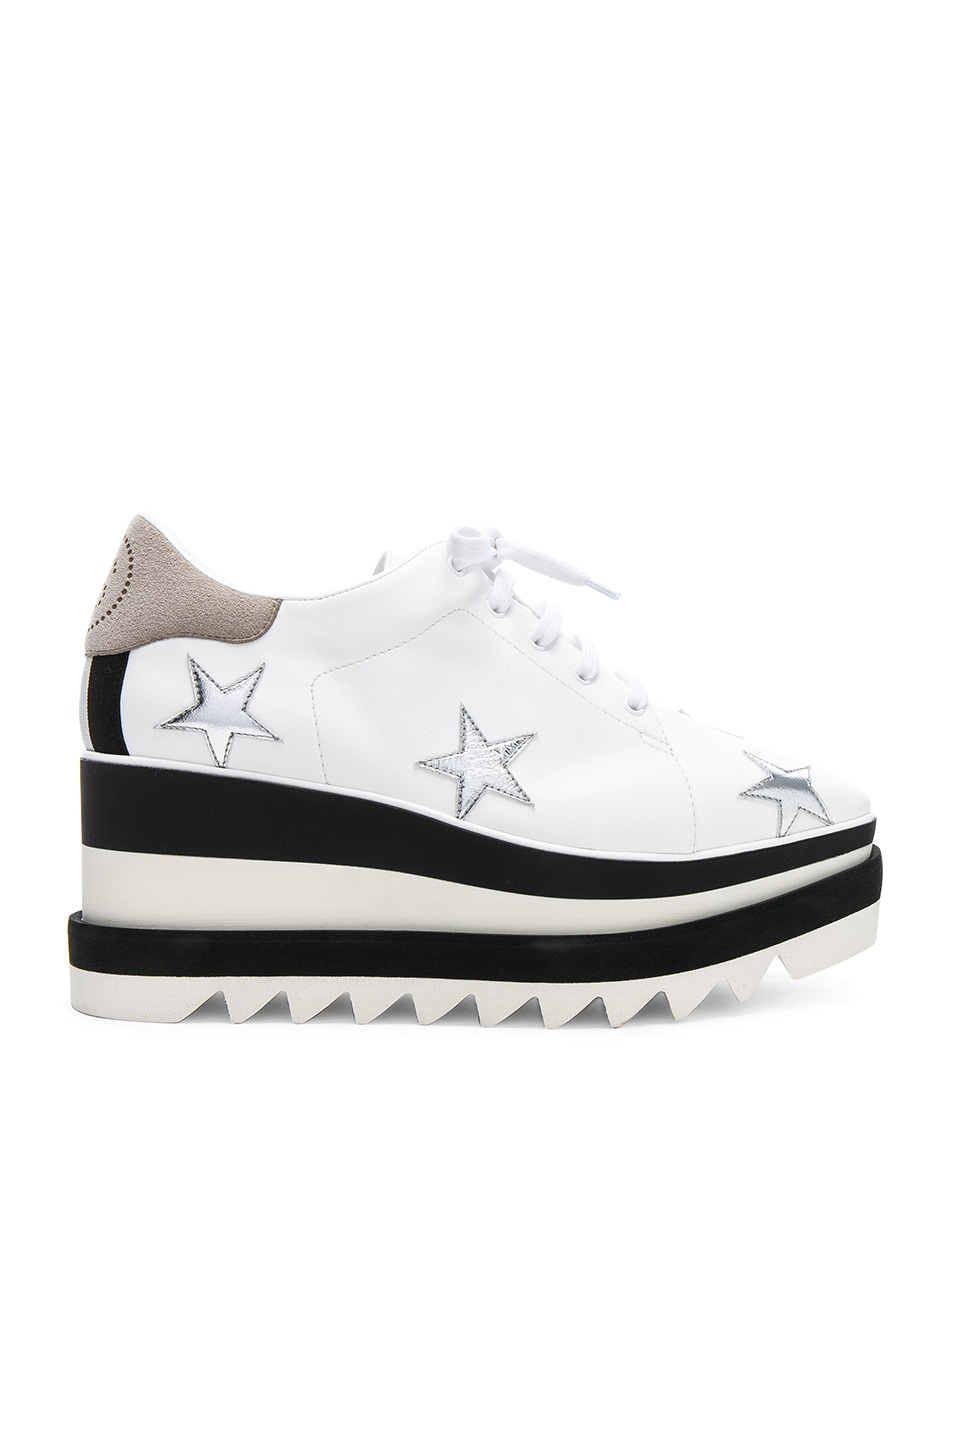 1d77c2a3859a Image 1 of Stella McCartney Star Embroidered Sneakelyse Platform Sneakers  in White